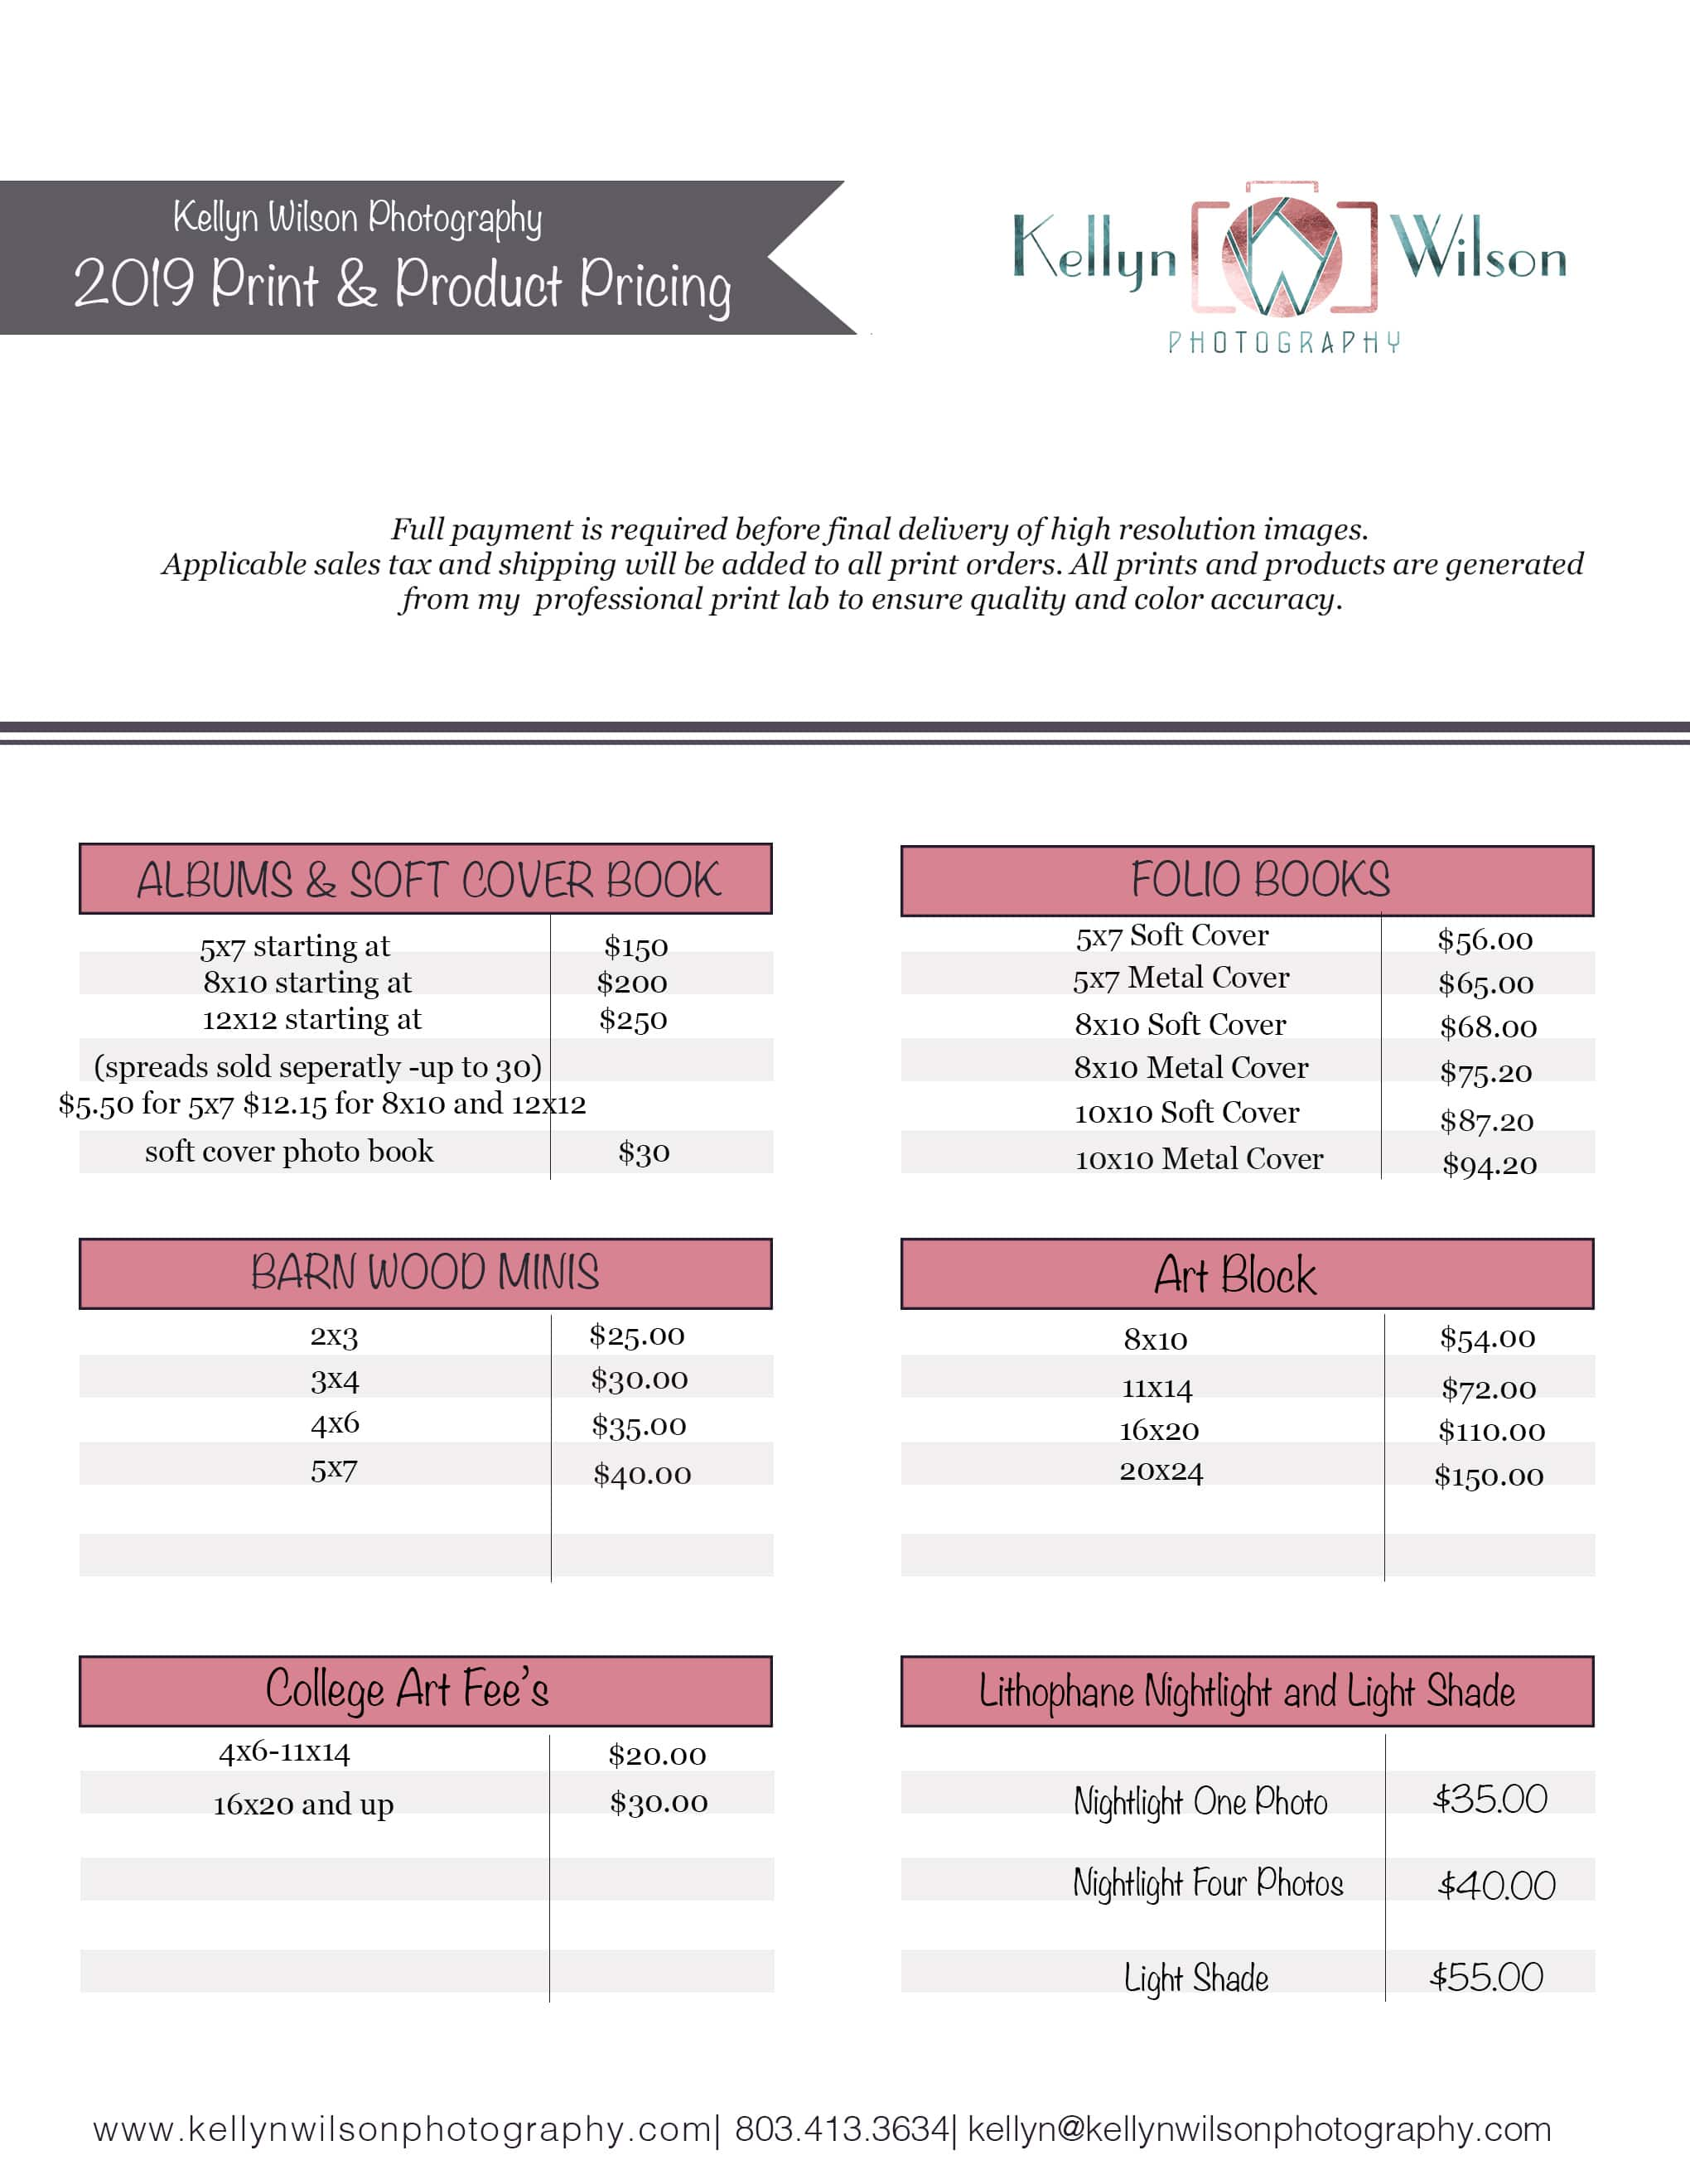 Pricing | Kellyn Wilson Photography